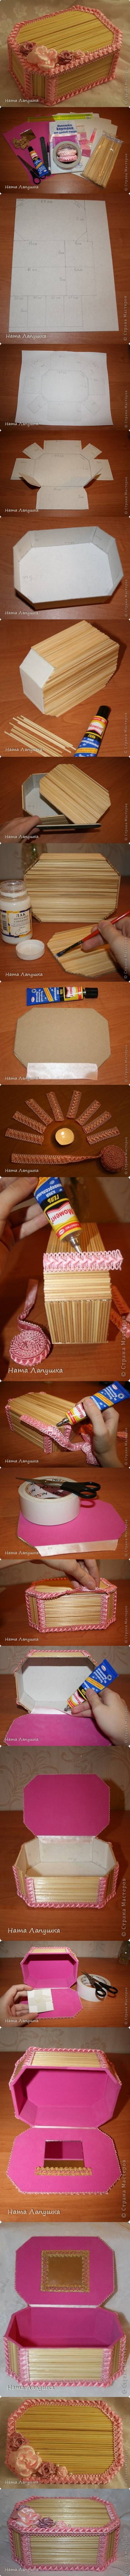 Excellent Diy Jewellery Box Tumblr Ideas - Jewelry Collection ...